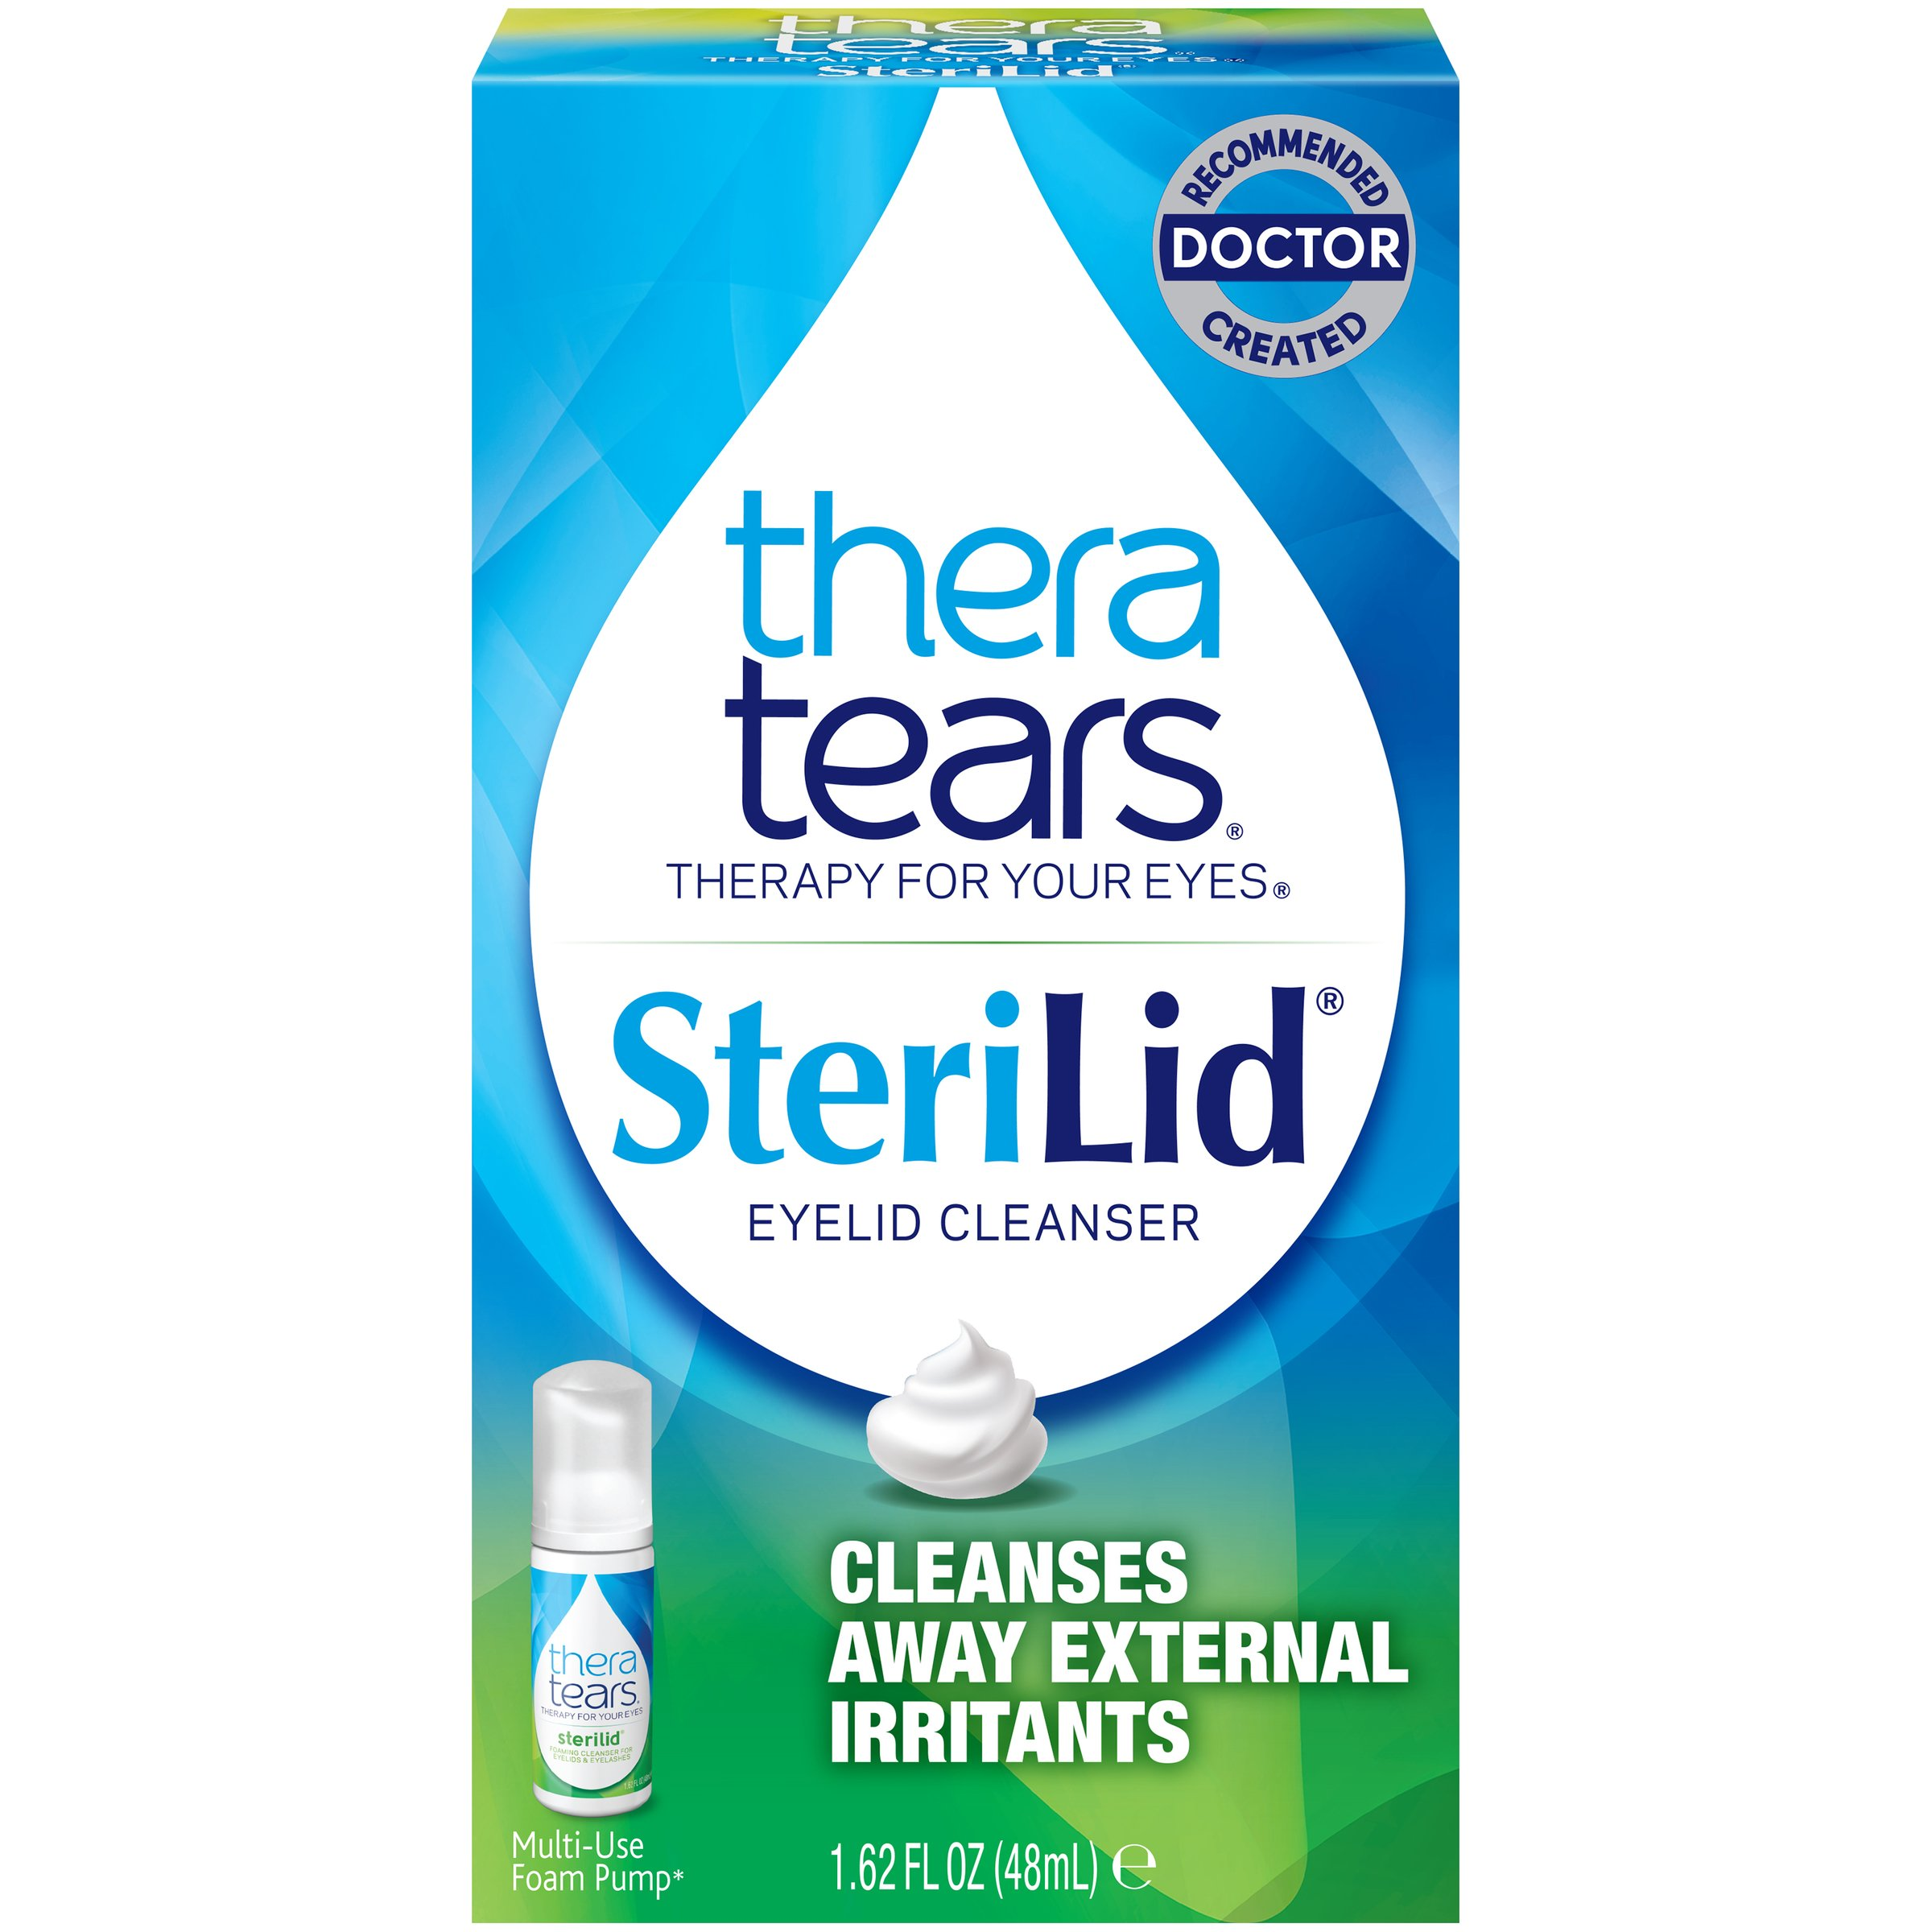 TheraTears Sterilid Eyelid Cleanser, Lid Scrub for Eyes and Eyelashes, Contains Tea Tree Oil, 48 mL, 1.62 Fl oz Foam Pump by Thera Tears